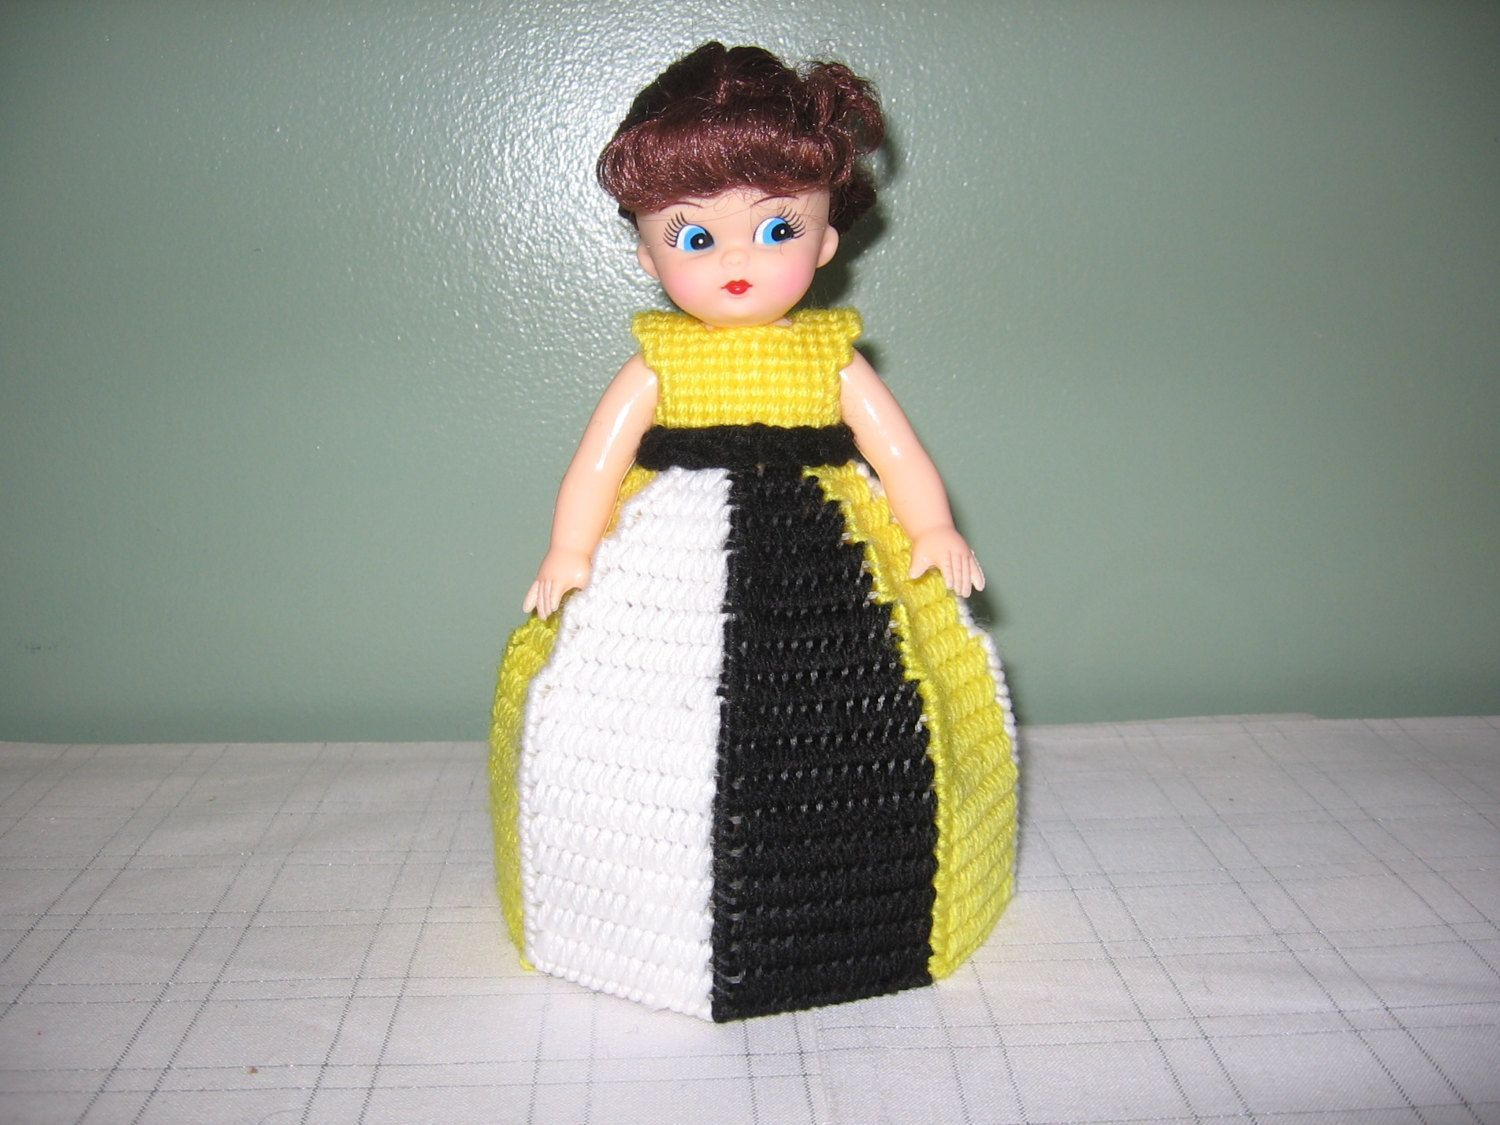 Black/White/Yellow Collectible Doll - use for decoration or Air Freshner!! by CreationsbyAMJ on Etsy #airfreshnerdolls Black/White/Yellow Collectible Doll - use for decoration or Air Freshner!! by CreationsbyAMJ on Etsy #airfreshnerdolls